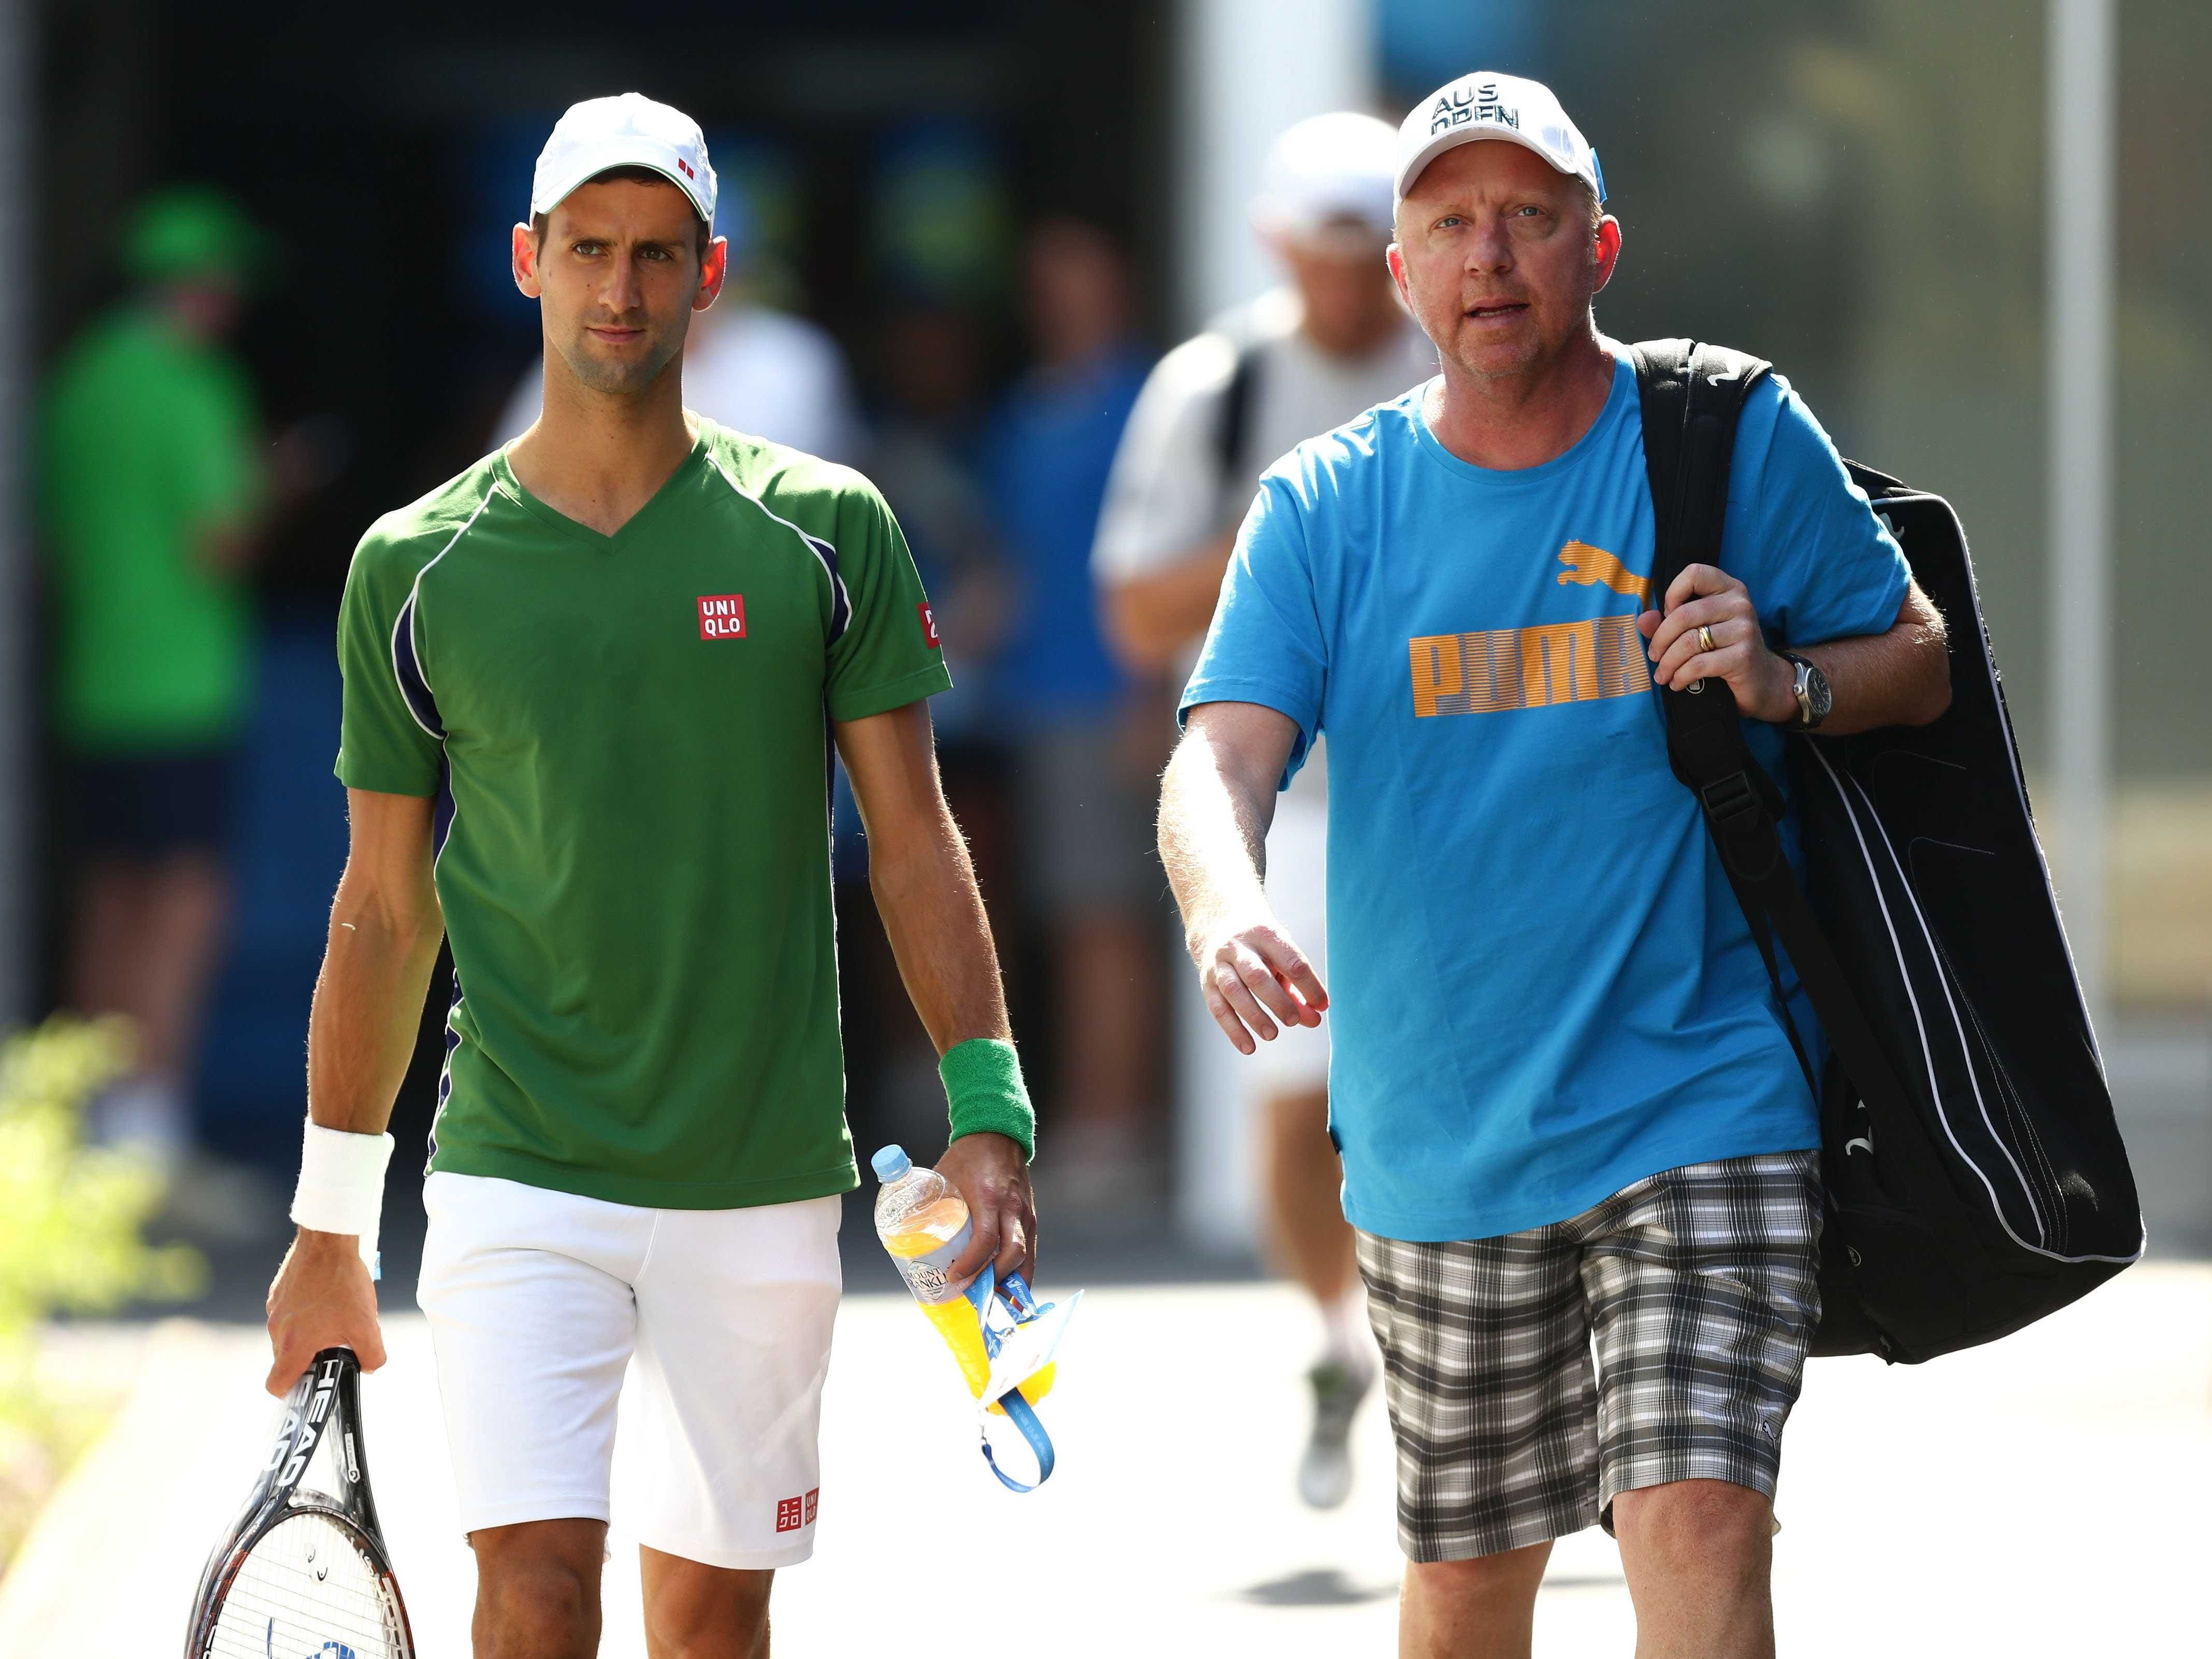 Do you know 2016 has been a terrible year for tennis veterans